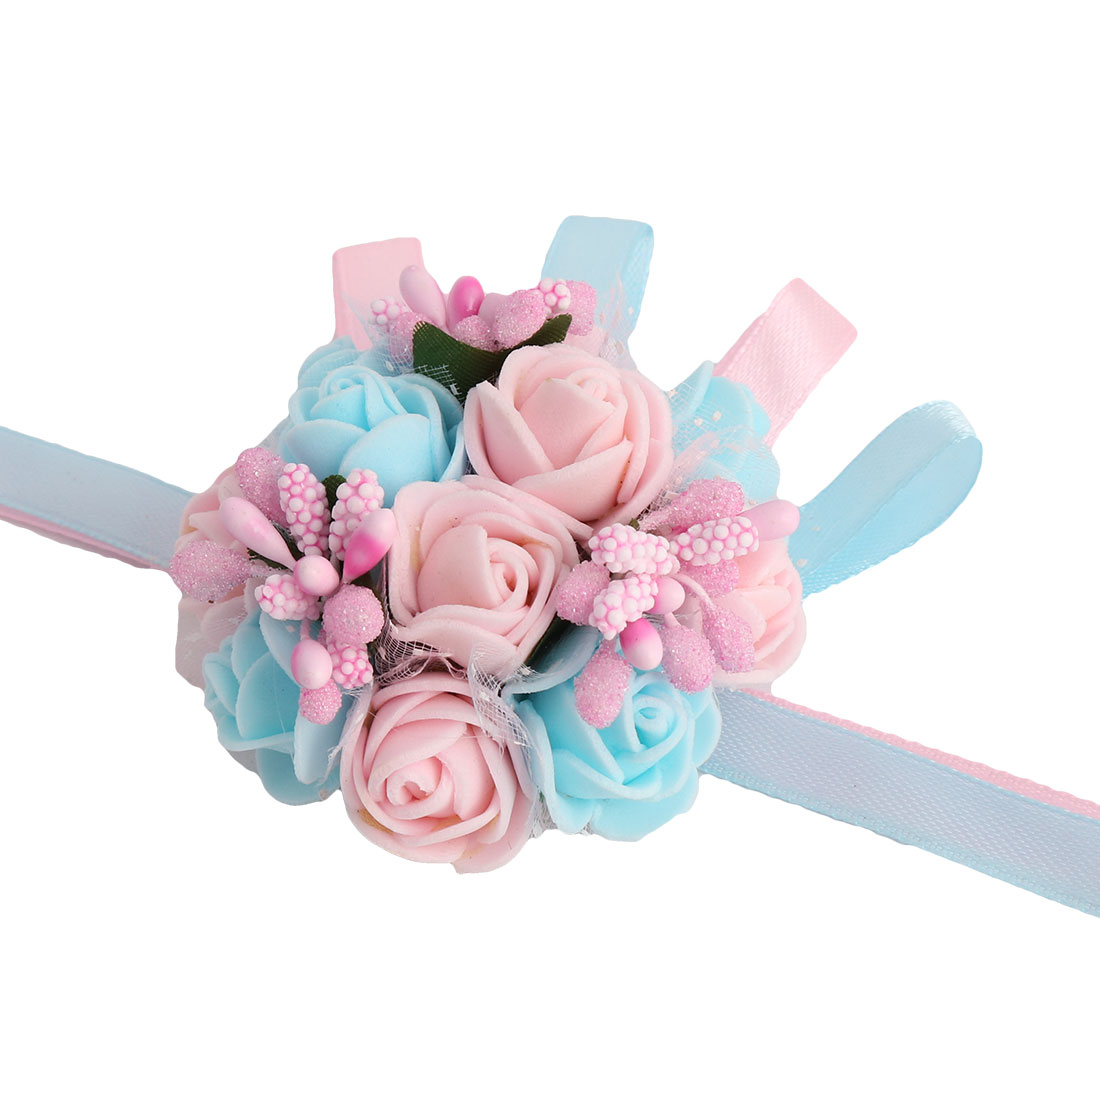 Party Prom Foam Rose Shaped Hand Corsage Decoration Artificial Wrist Flower